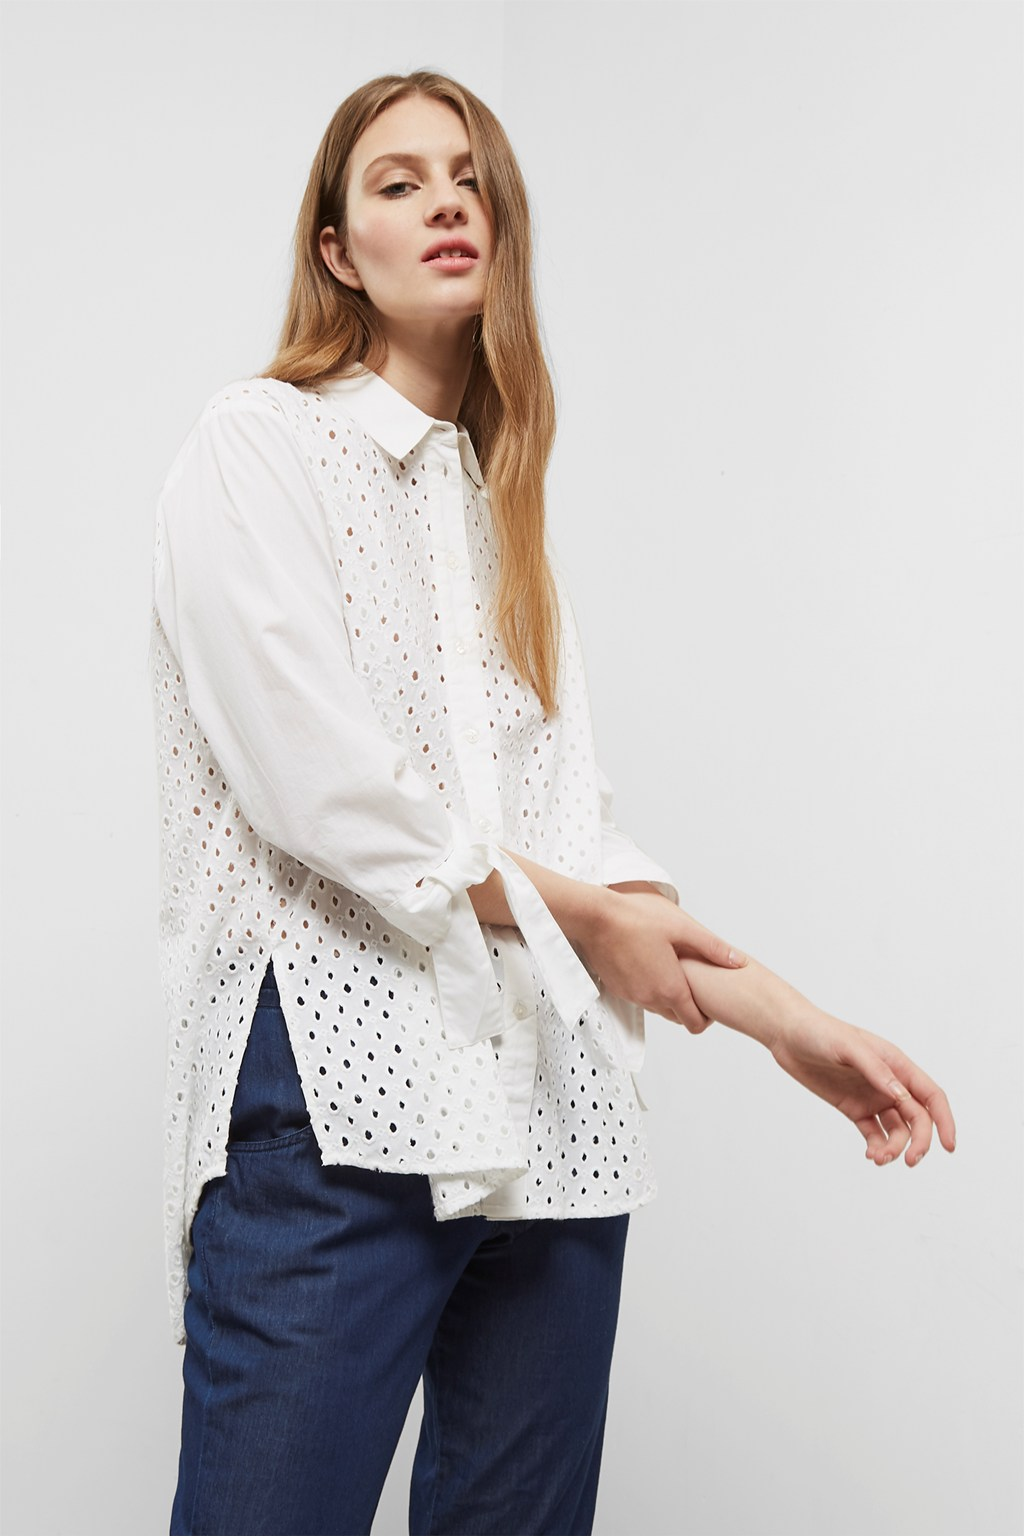 Buy Embroidered Shirt For Women - Women's White Shirts Online in India